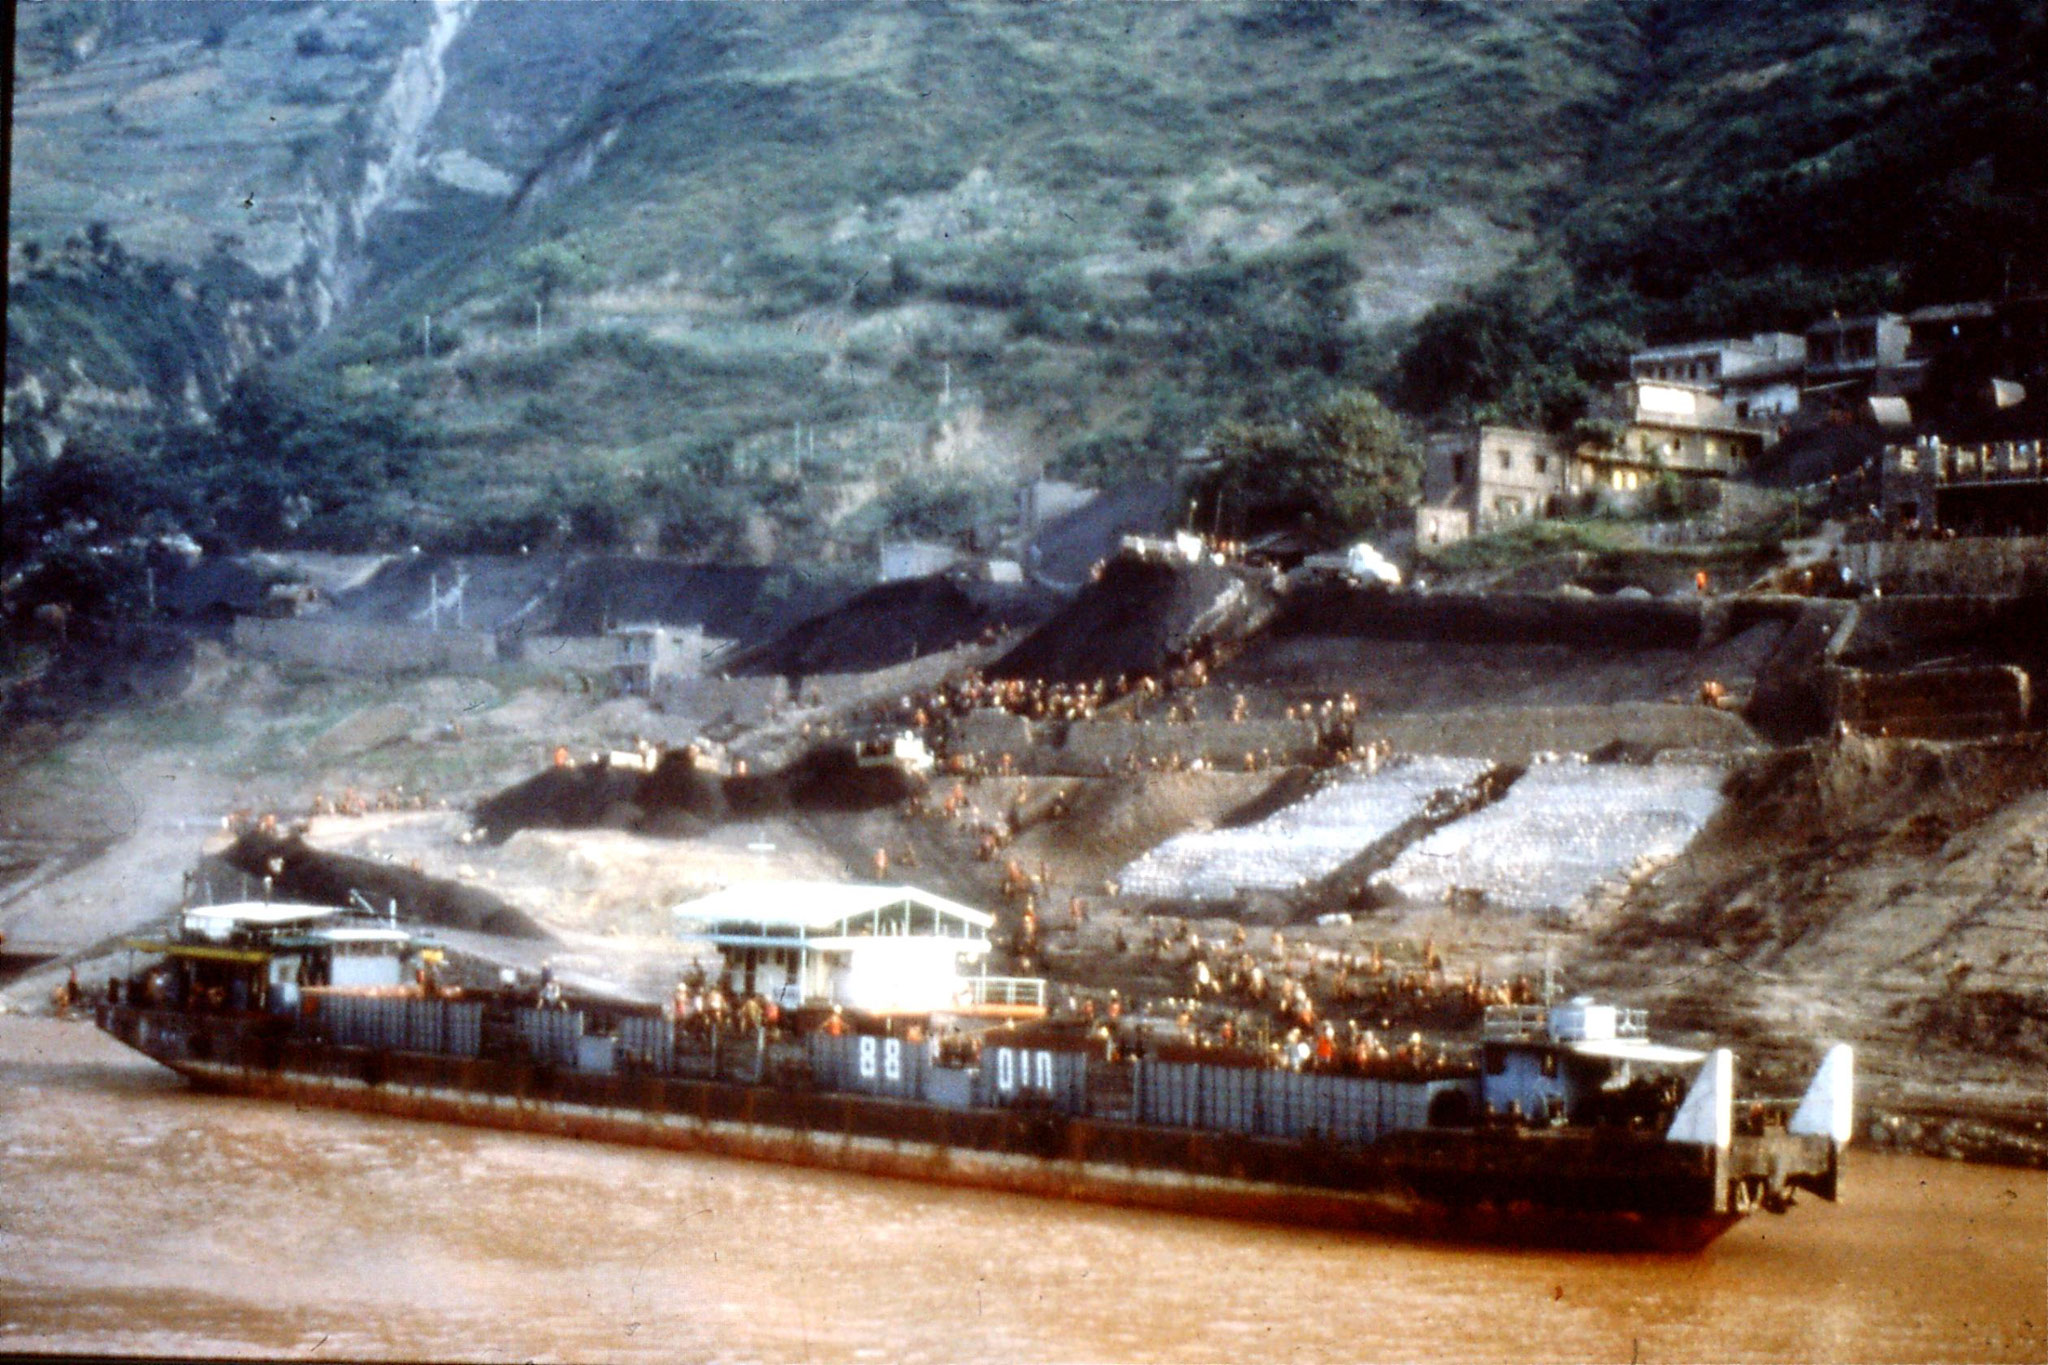 10/8/1989:9: 1850hrs Fengjie loading coal